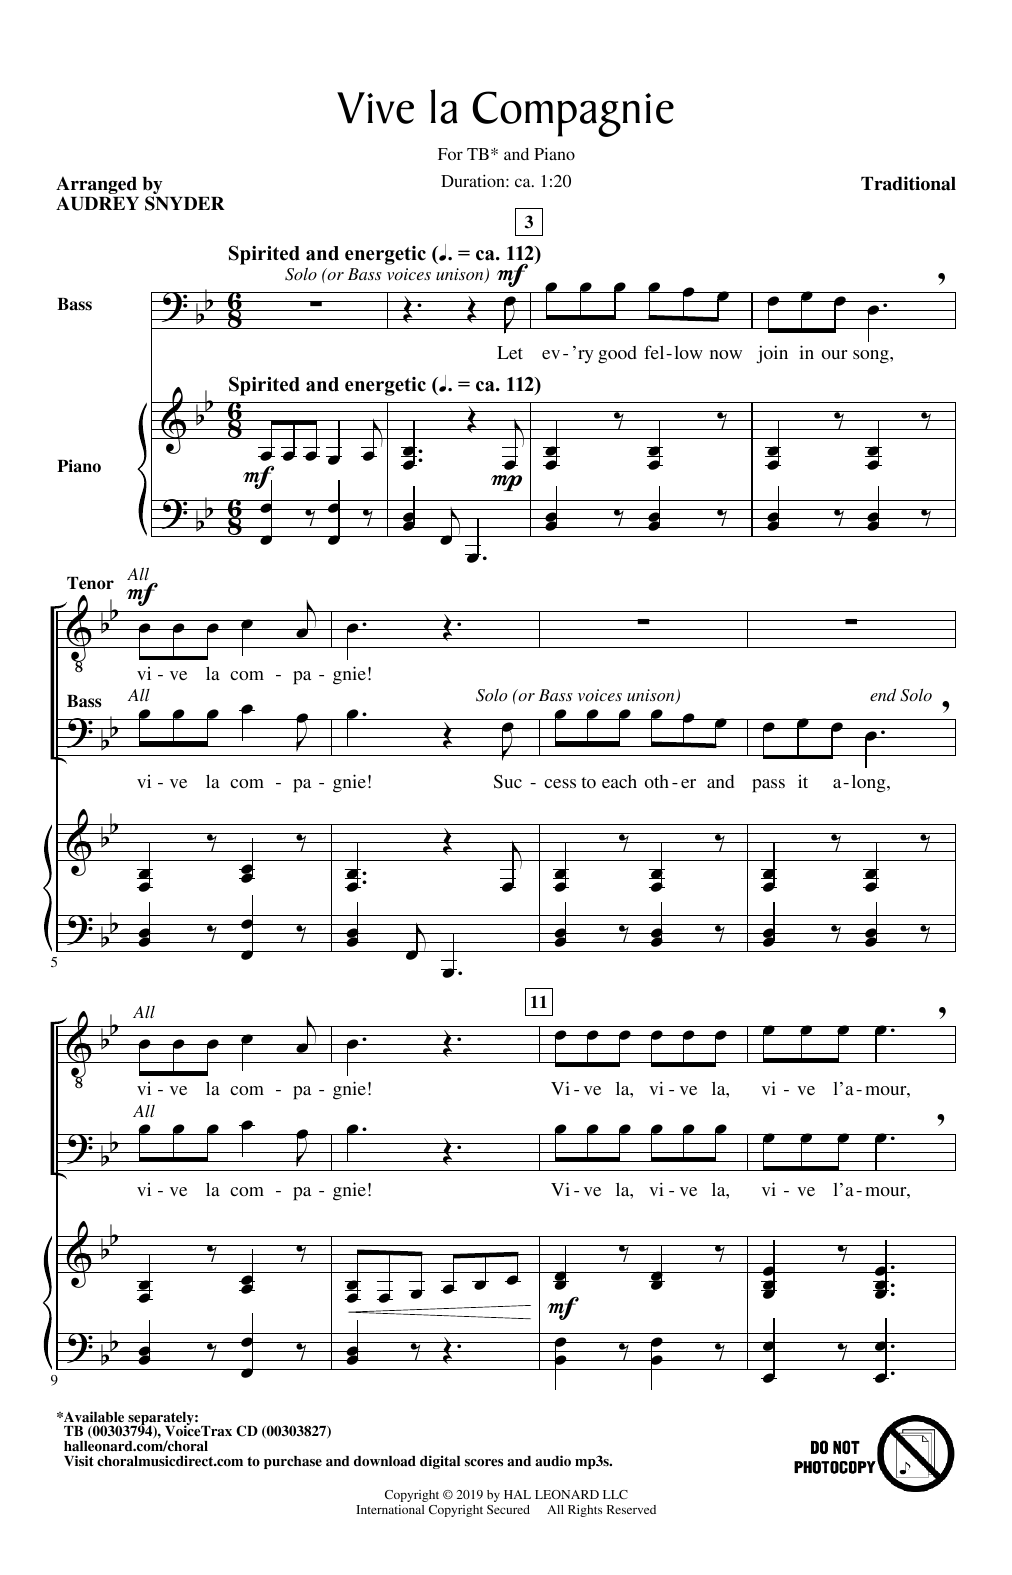 Traditional Vive La Compagnie (arr. Audrey Snyder) sheet music notes and chords. Download Printable PDF.